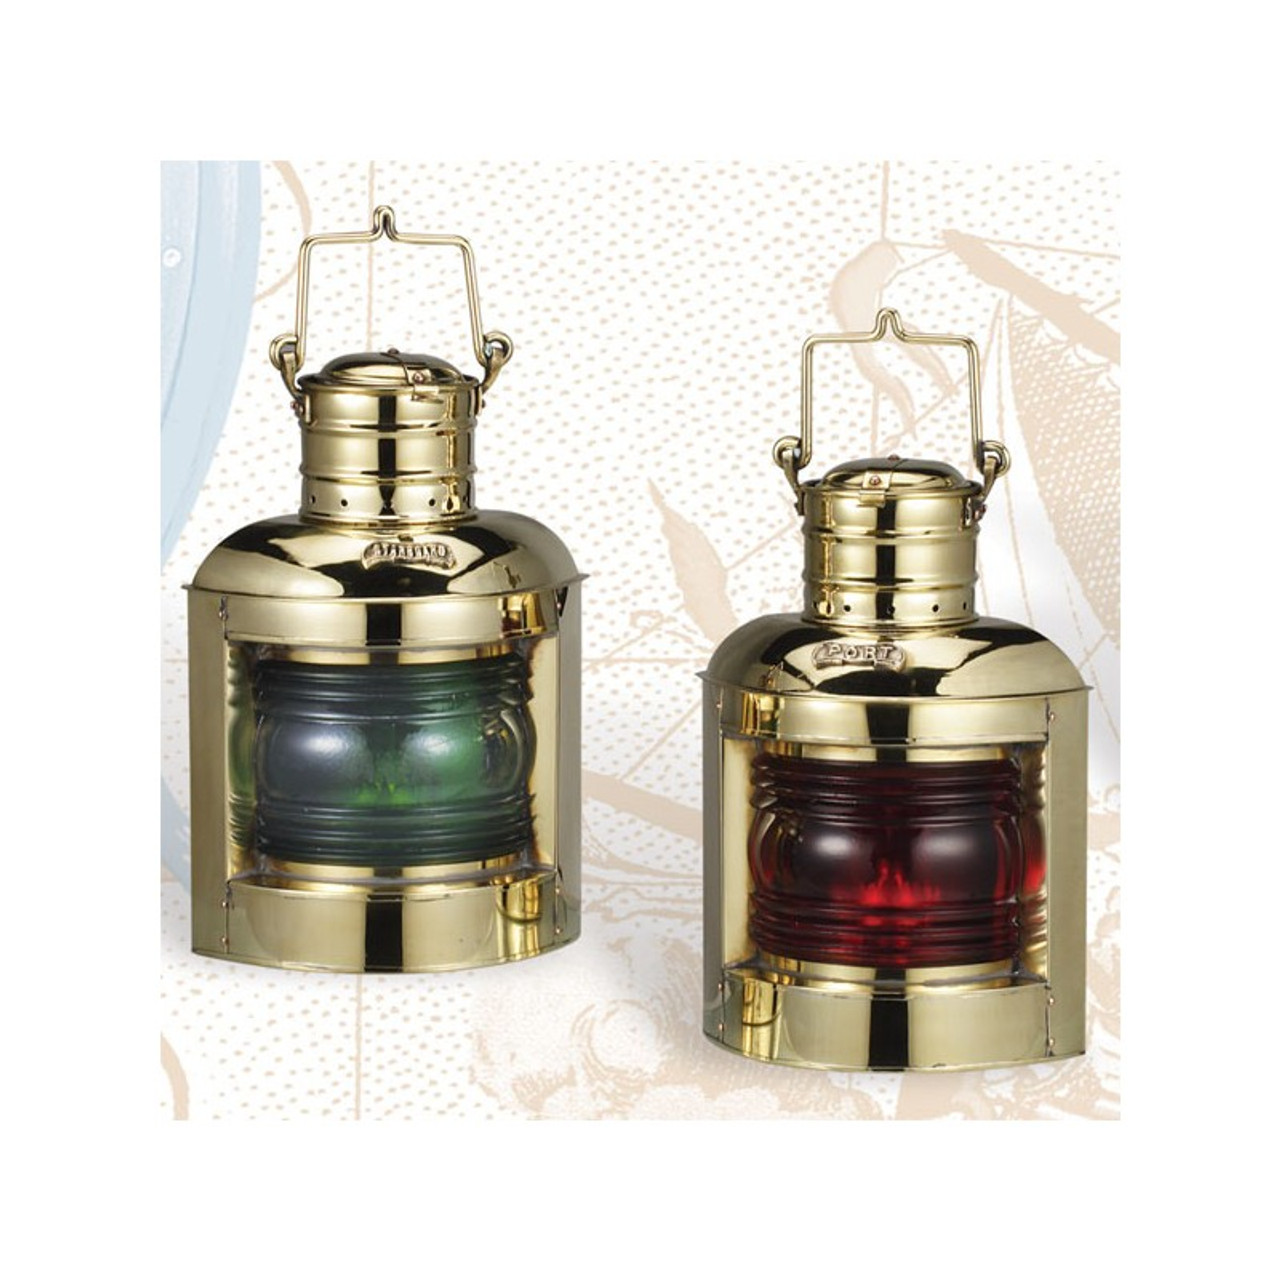 """(BL-835 Electric)  Set of 2 Deluxe 12.5"""" Port and Starboard Electric Lanterns"""